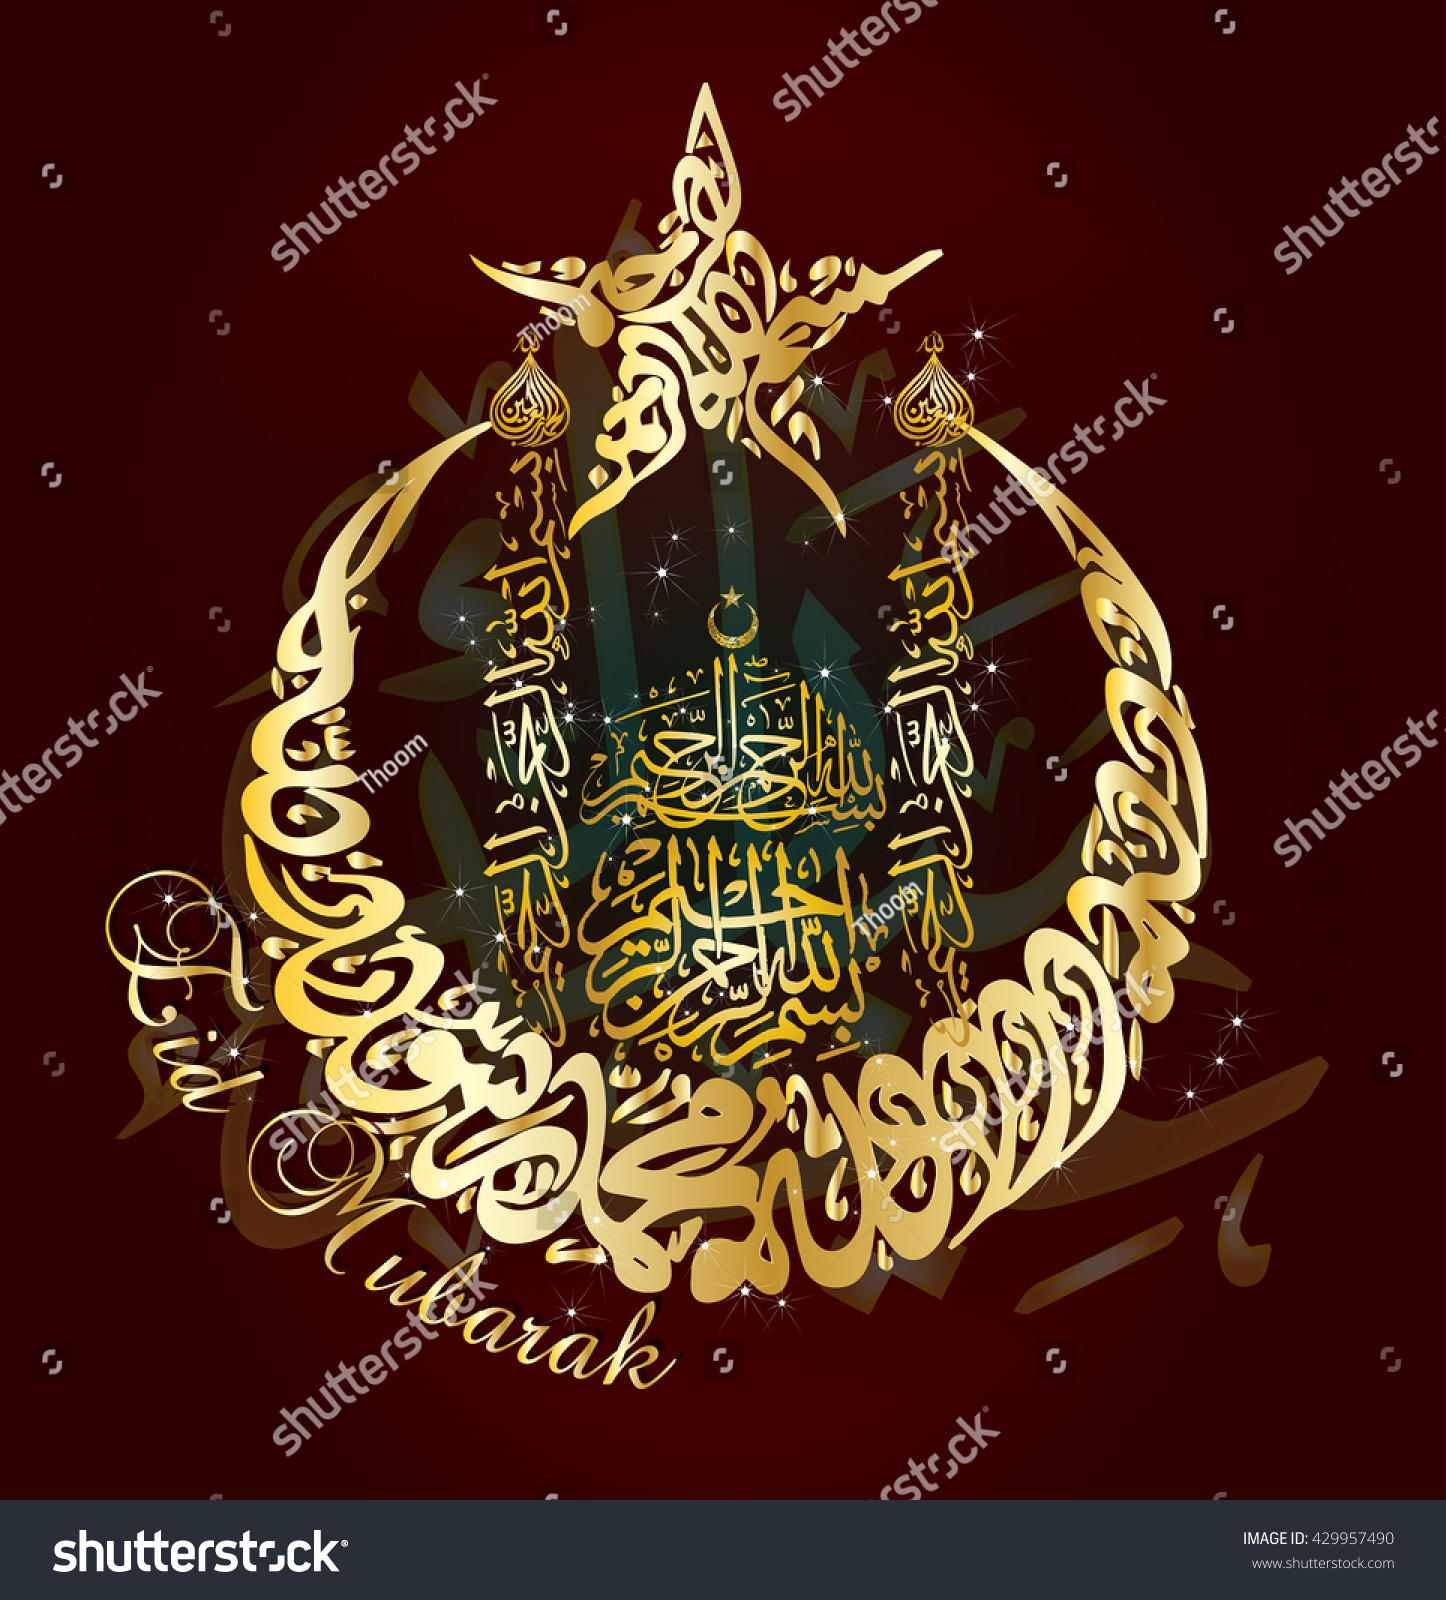 Eid mubarak muslim islamic holiday celebration stock vector eid mubarak muslim islamic holiday celebration greeting card or wallpaper with golden crescent with a kristyandbryce Gallery